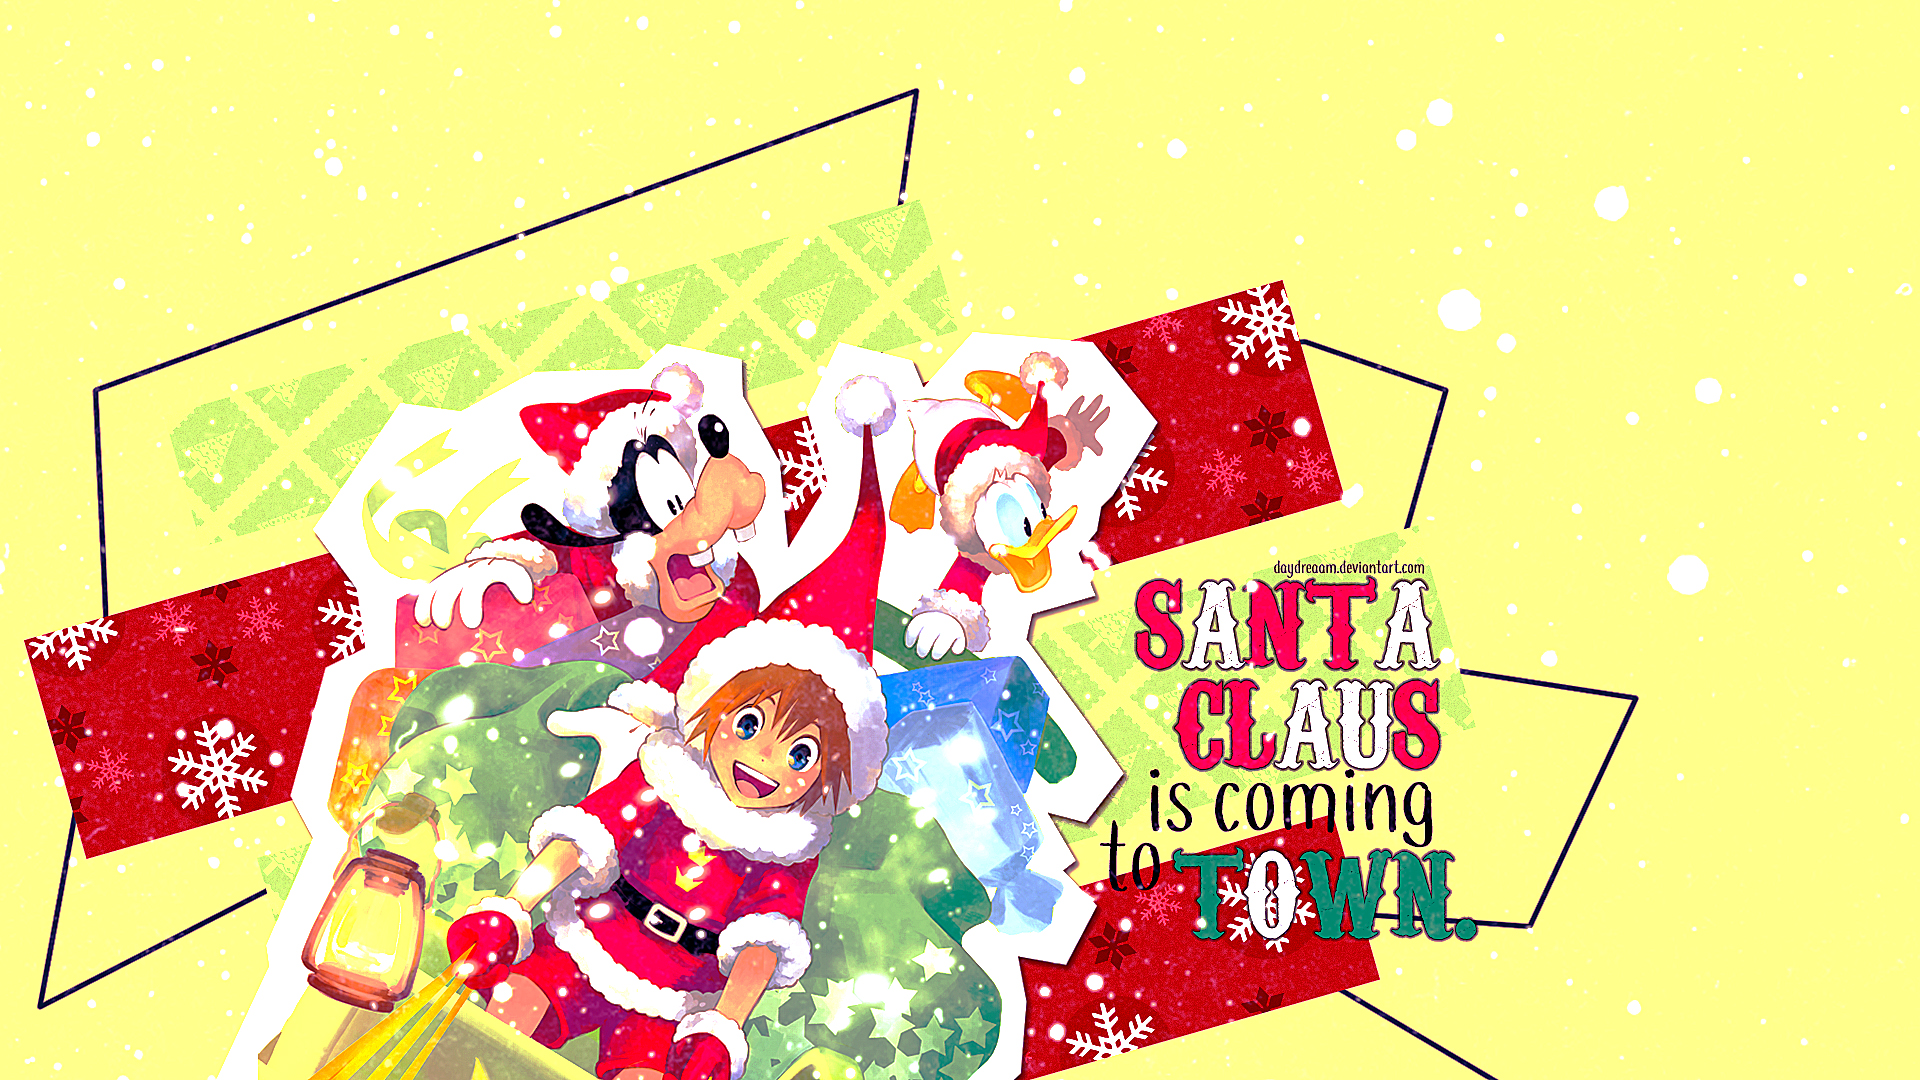 Kingdom Hearts Wallpaper: Santa Claus is Coming to Town. - Minitokyo